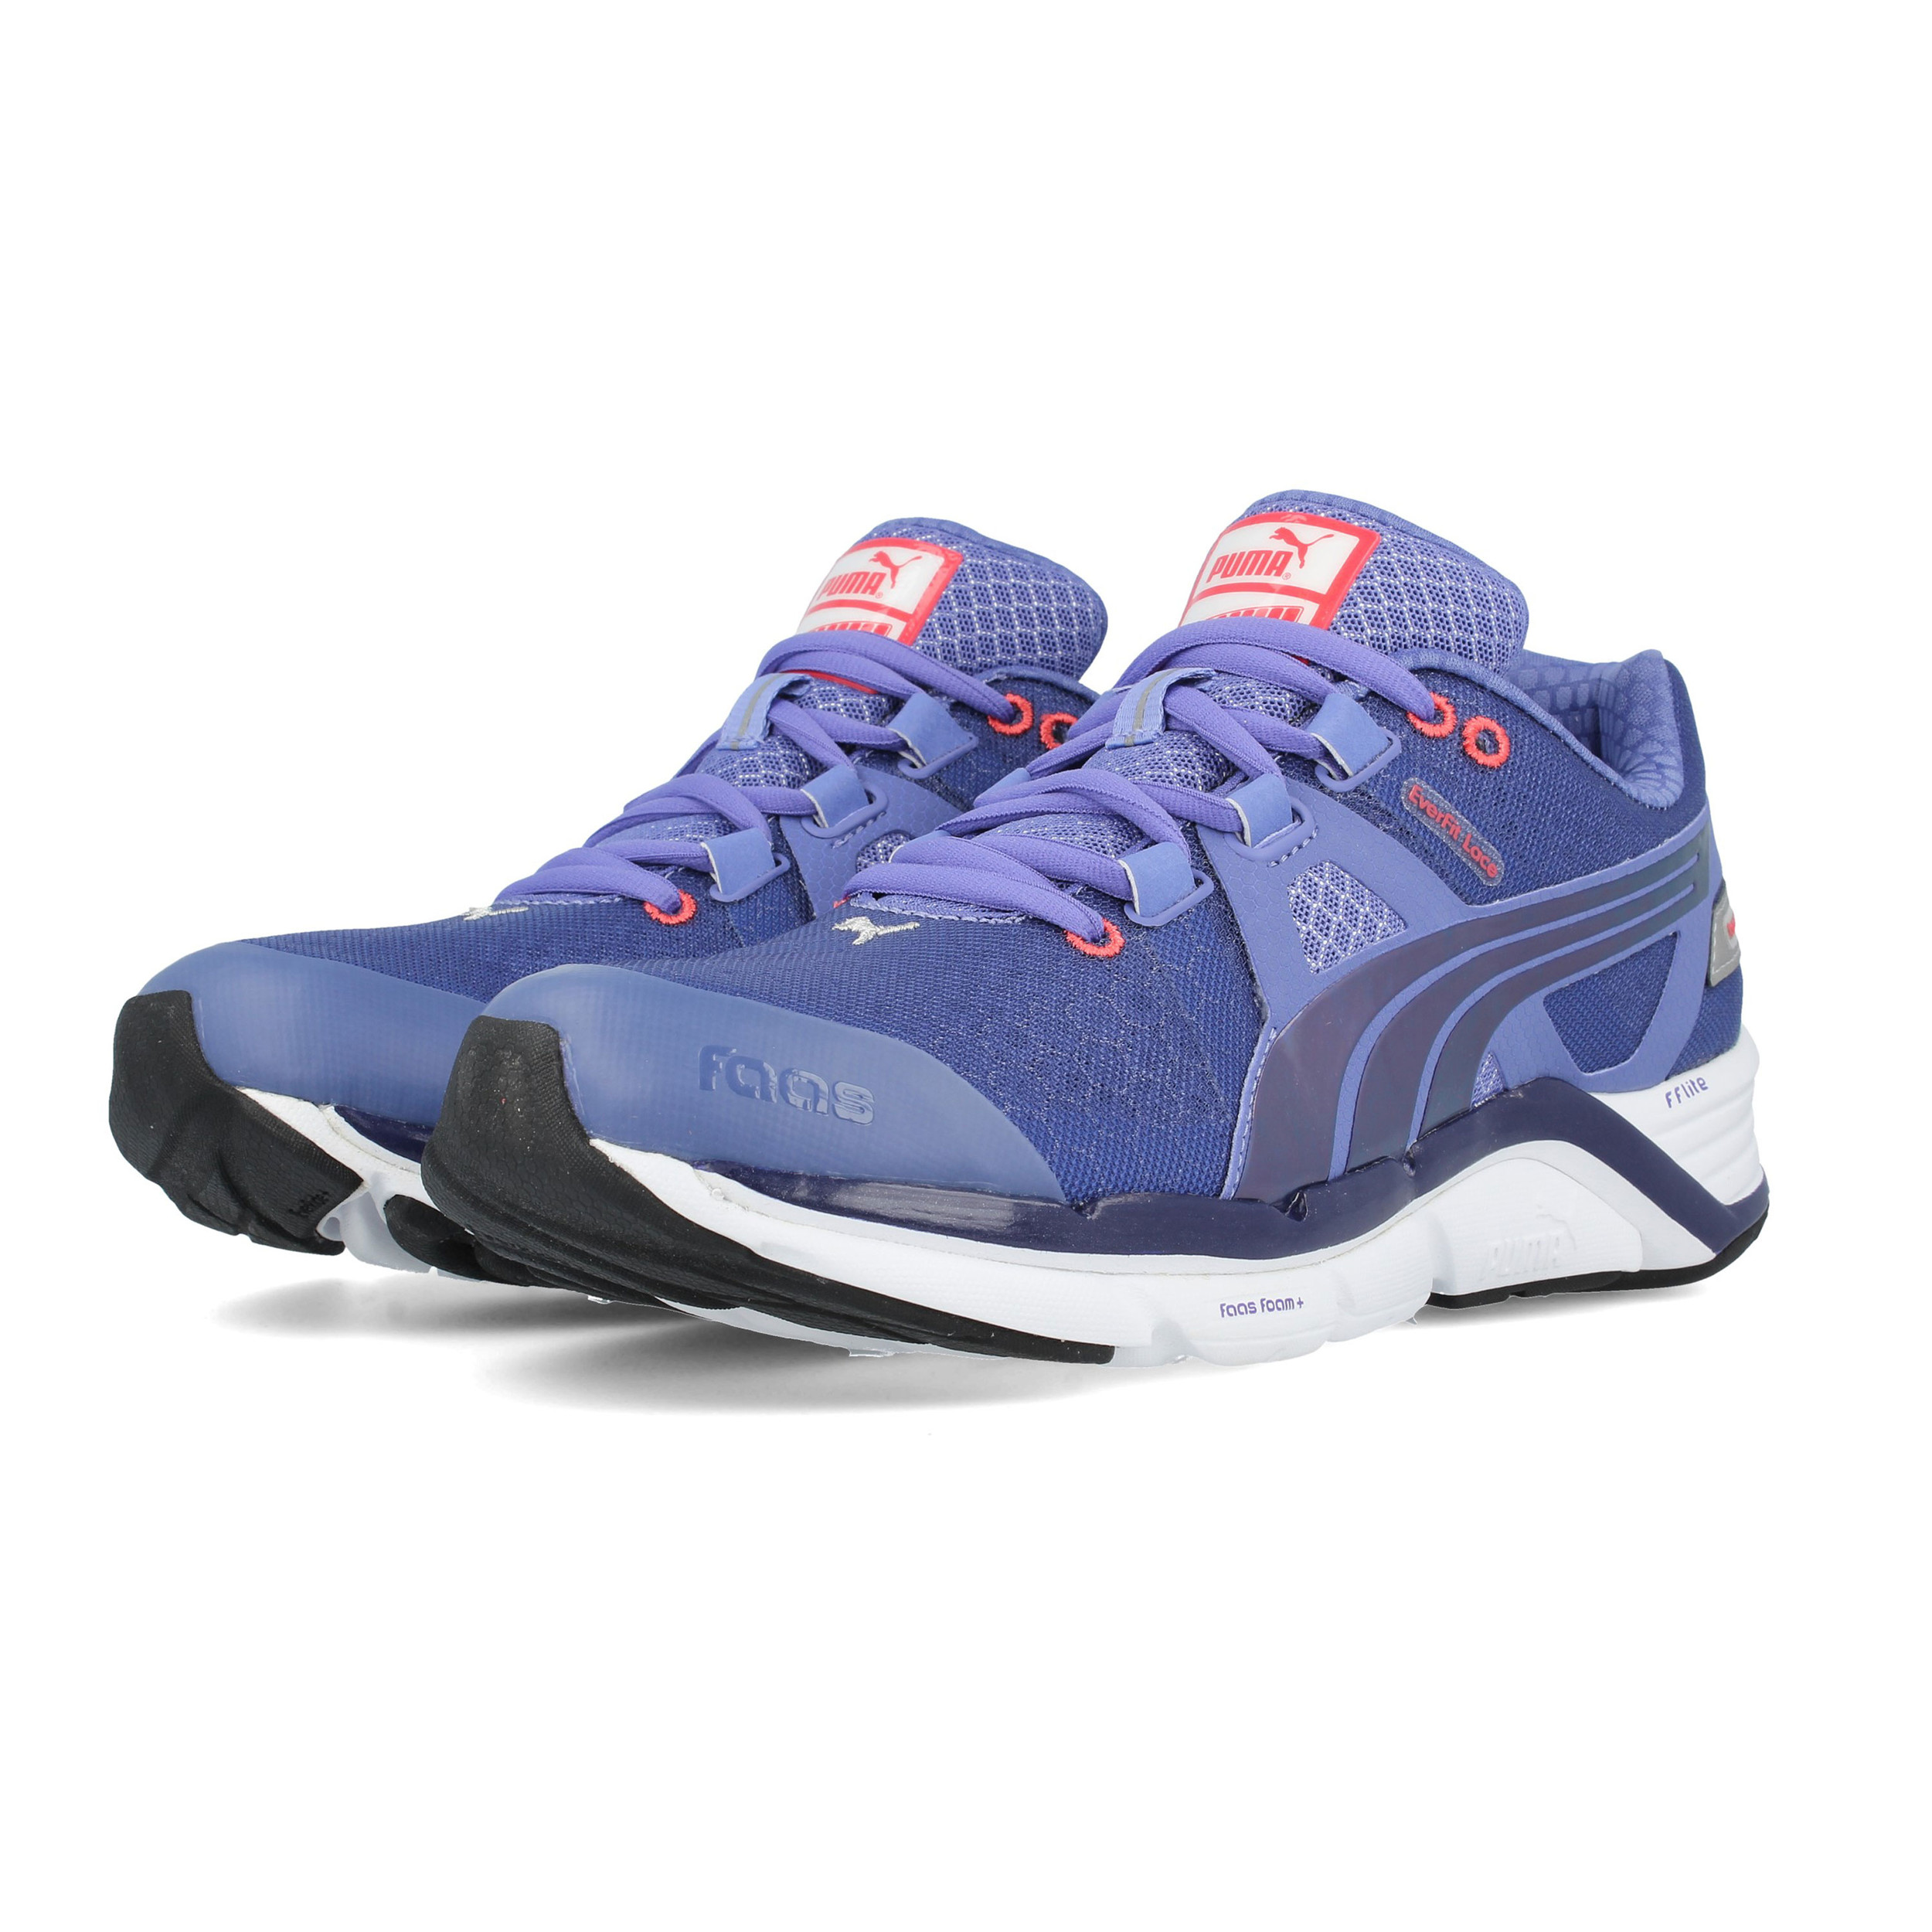 b00149124e6 Details about Puma Womens FAAS 1000 V1.5 Running Shoes Trainers Sneakers  Purple Sports